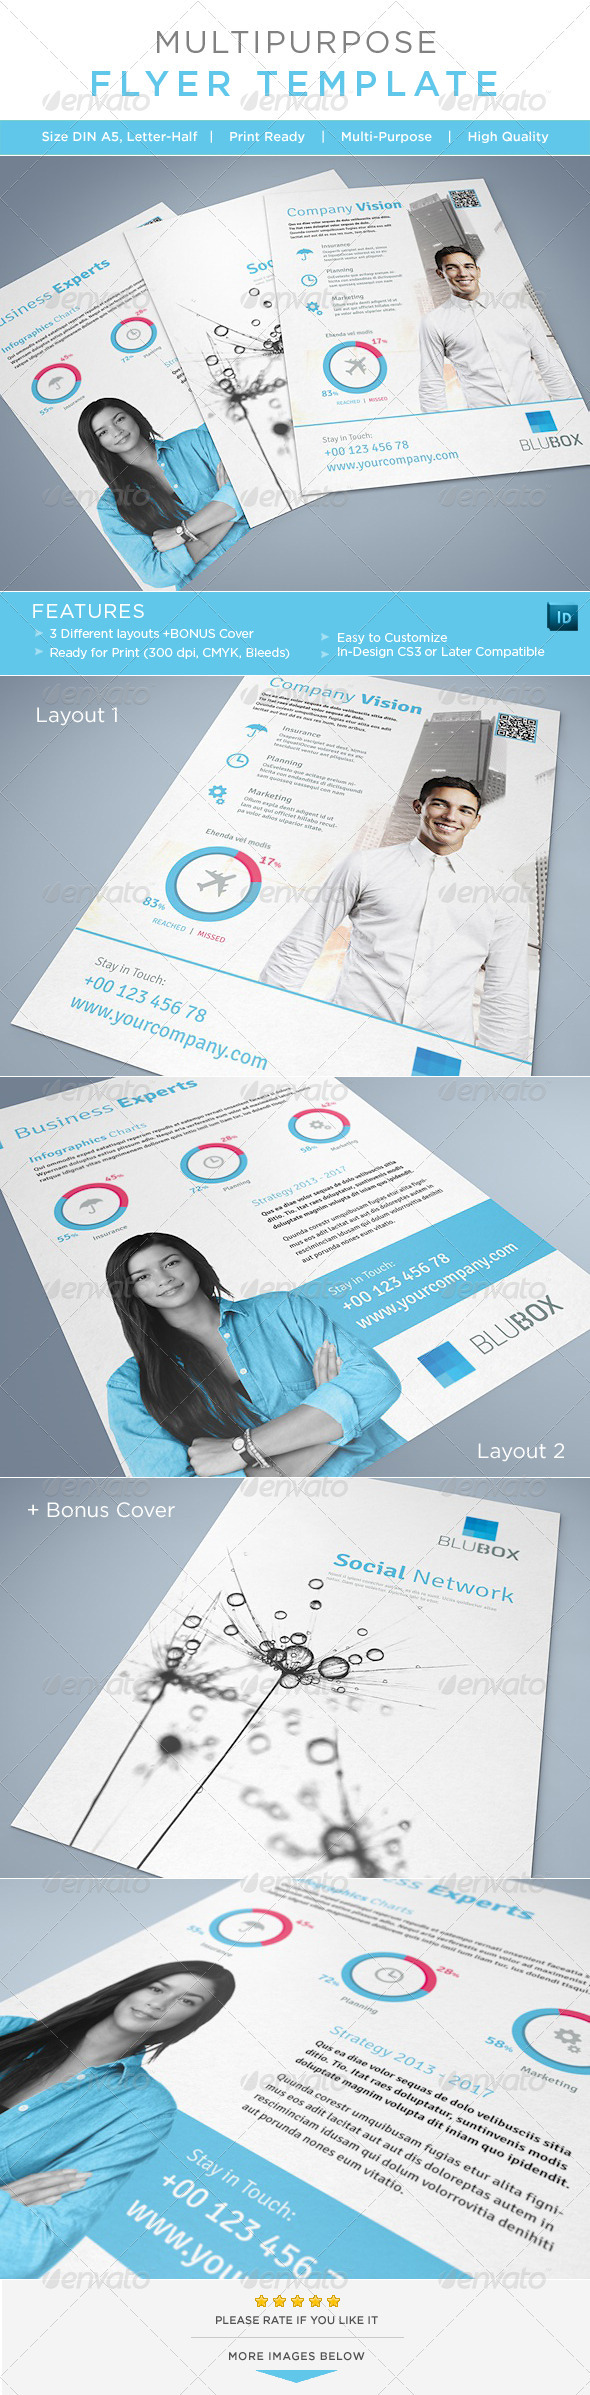 Multipurpose Flyer AD Template